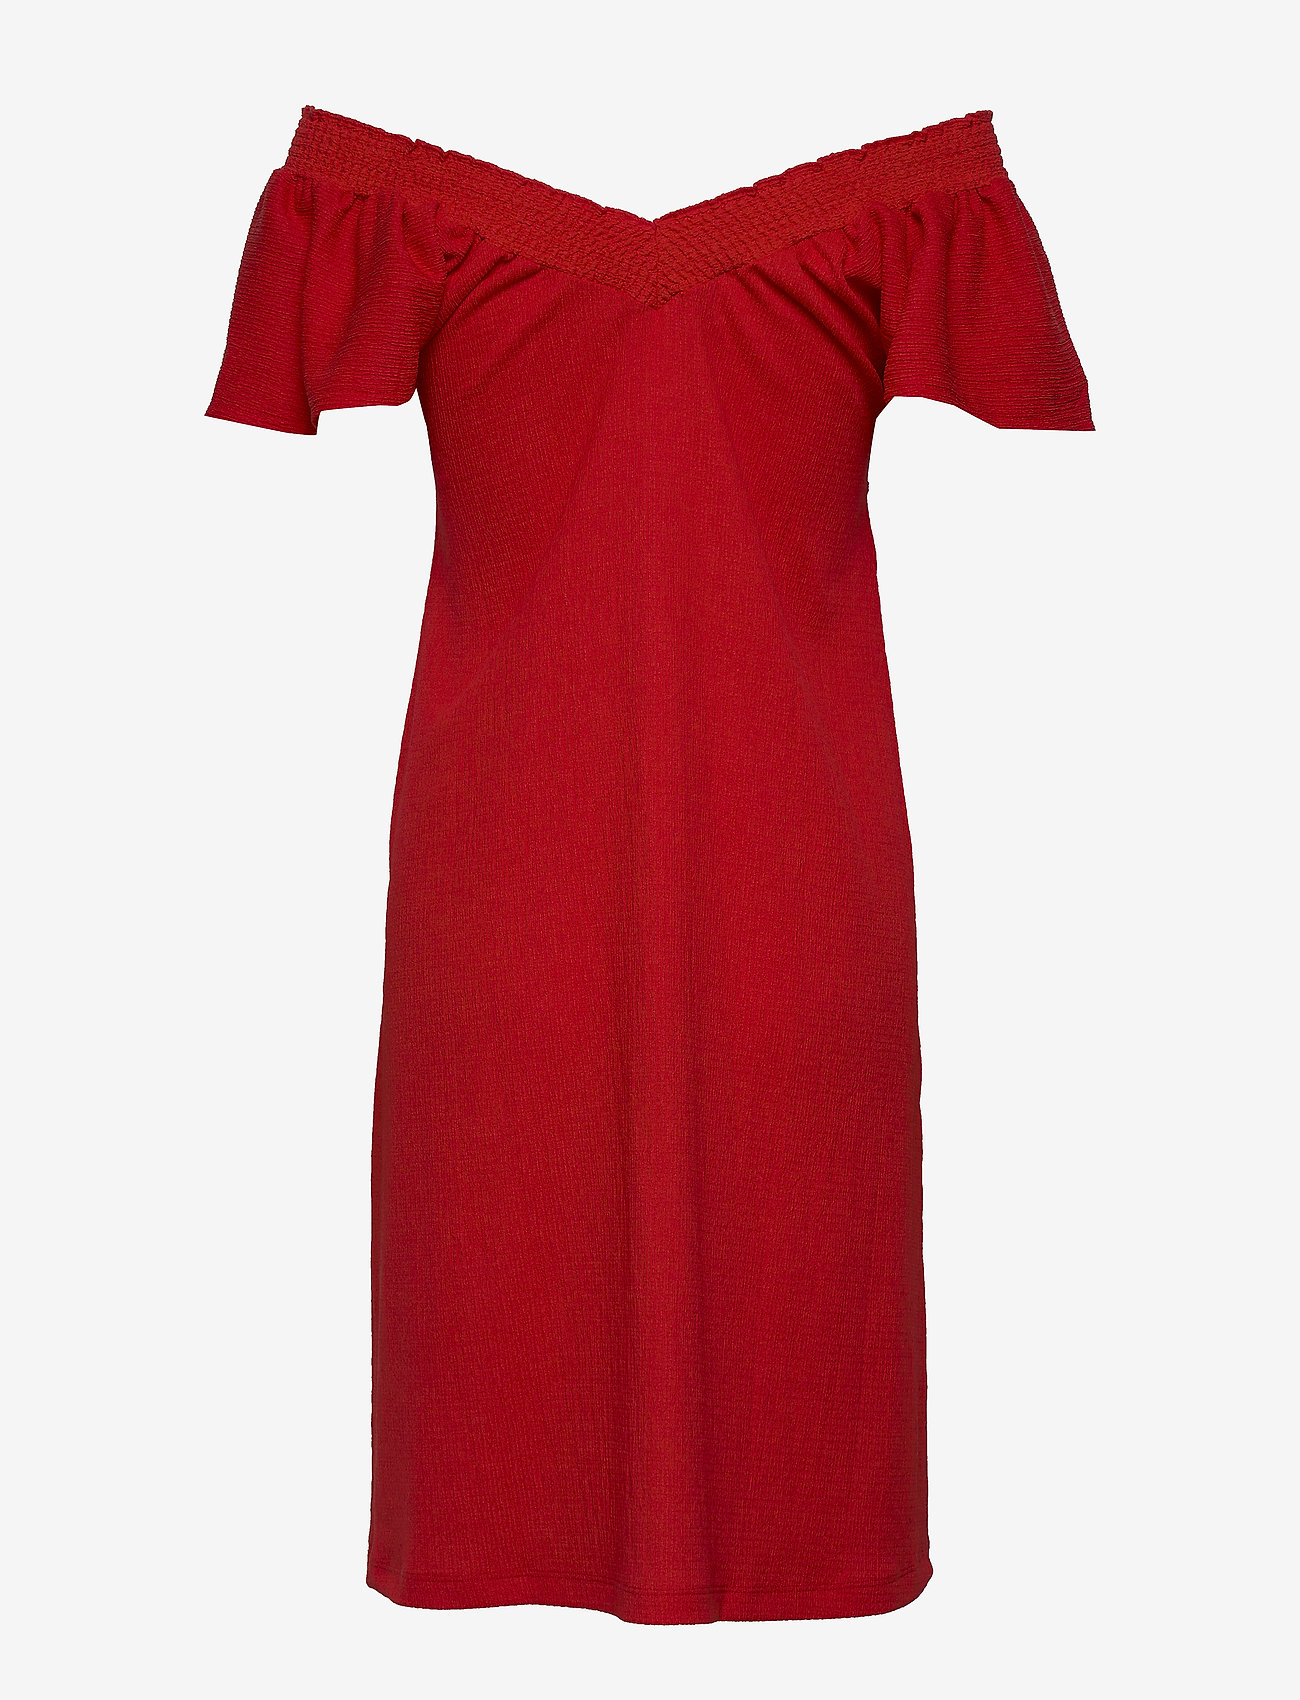 InWear EltonIW Dress - Kjoler SPICY RED - Dameklær Spesialtilbud